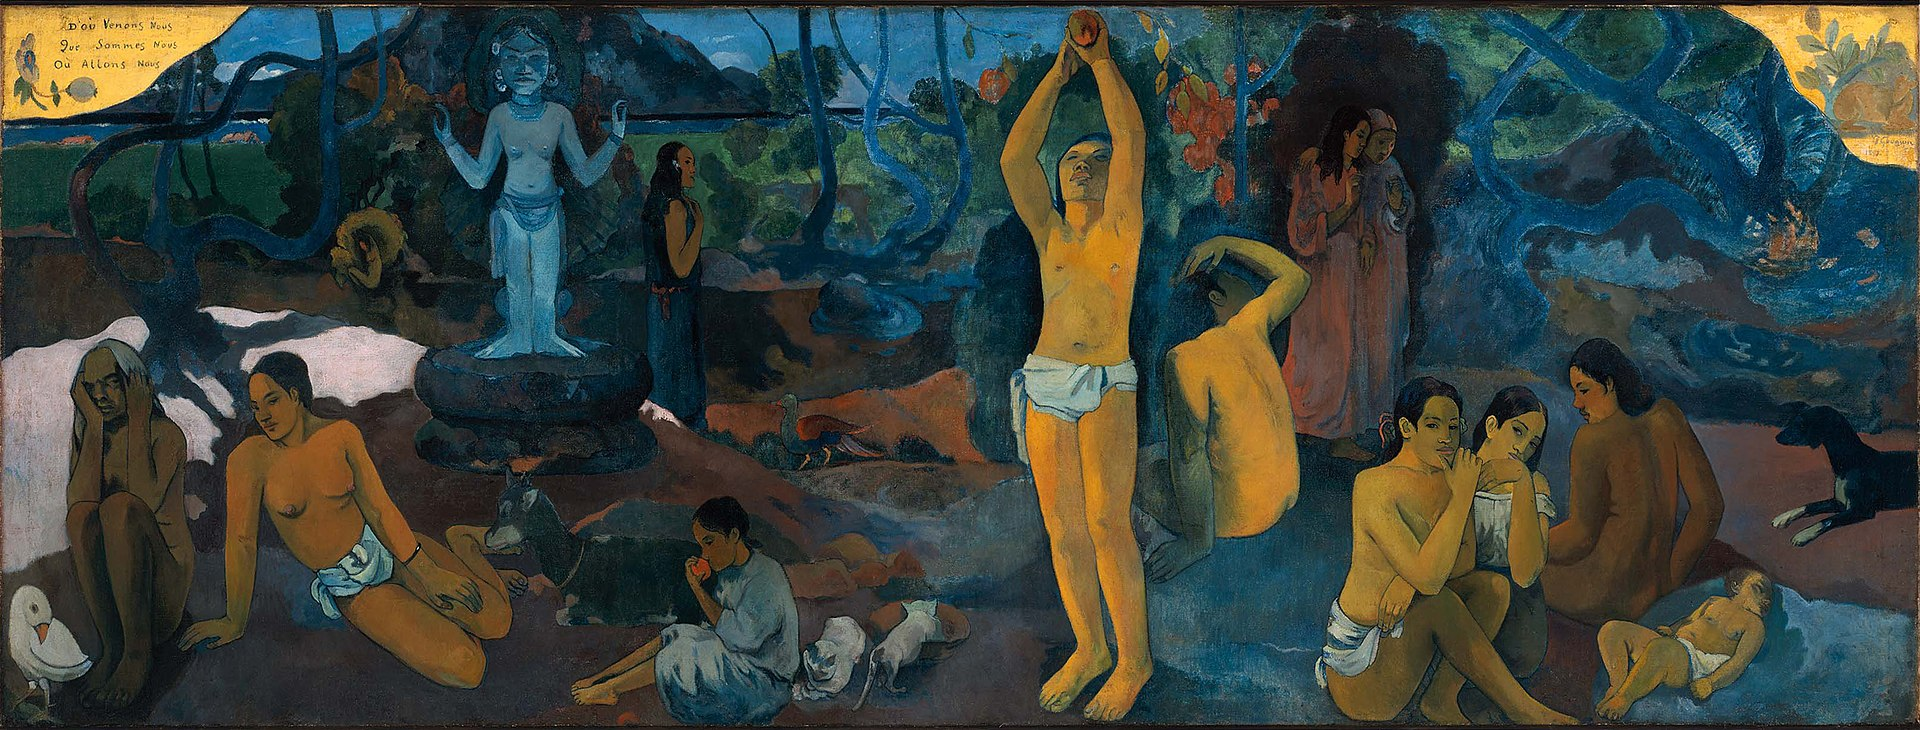 https://upload.wikimedia.org/wikipedia/commons/thumb/e/e5/Paul_Gauguin_-_D%27ou_venons-nous.jpg/1920px-Paul_Gauguin_-_D%27ou_venons-nous.jpg